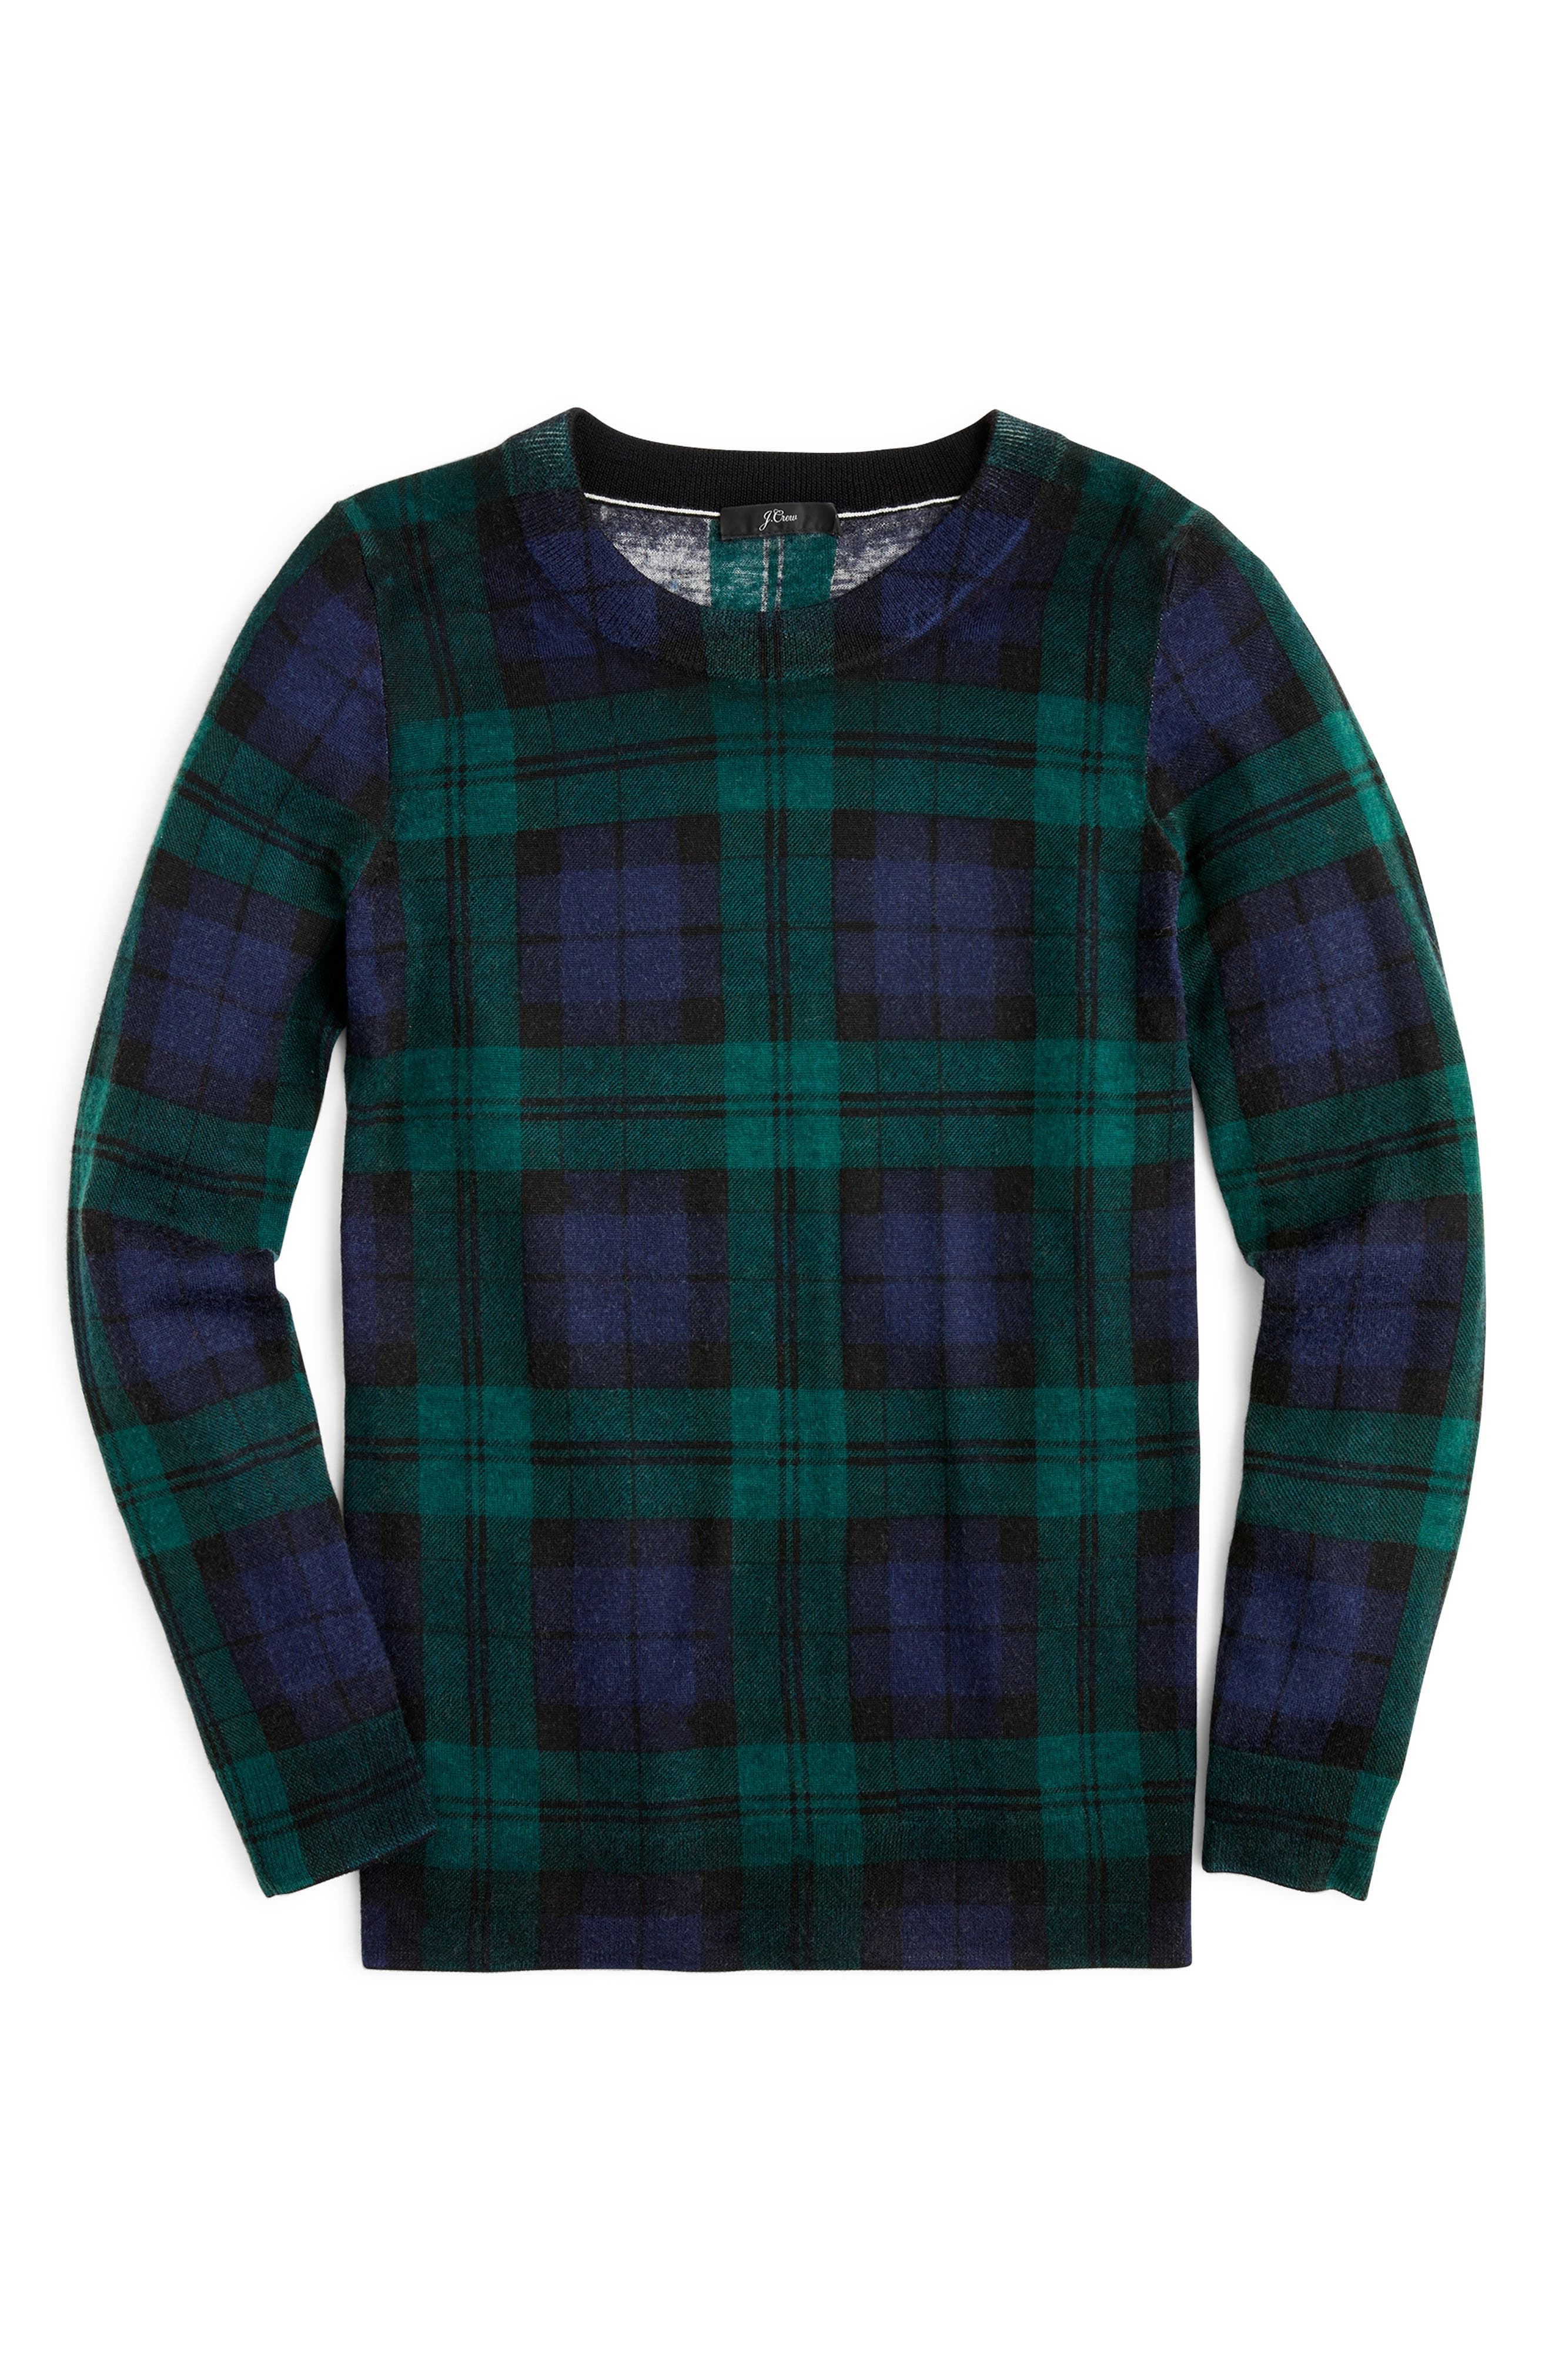 J.CREW,                             Blackwatch Plaid Tippi Sweater,                             Alternate thumbnail 5, color,                             009